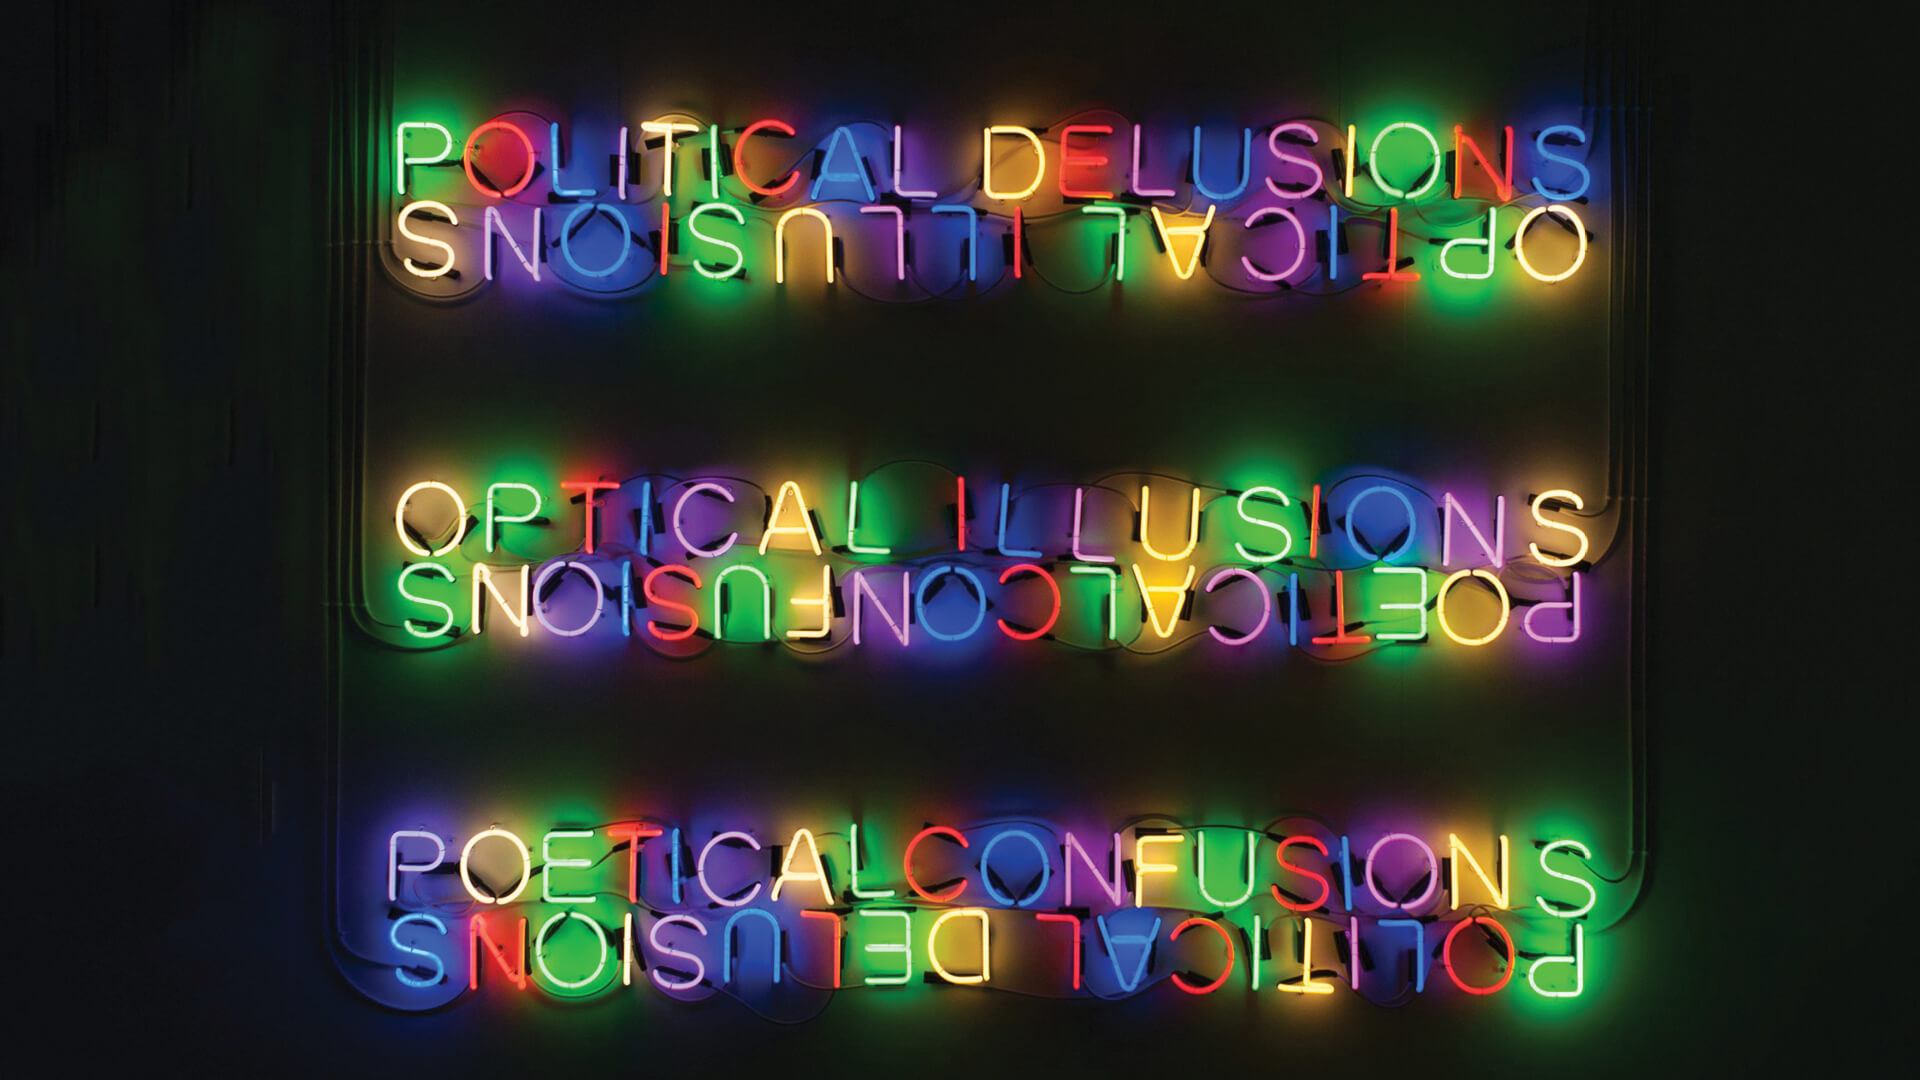 Tim Etchells' neon signage rightfully disorients us from evolving any easy relationship between truth, reality, and perception | Beniamin Boar| STIRworld